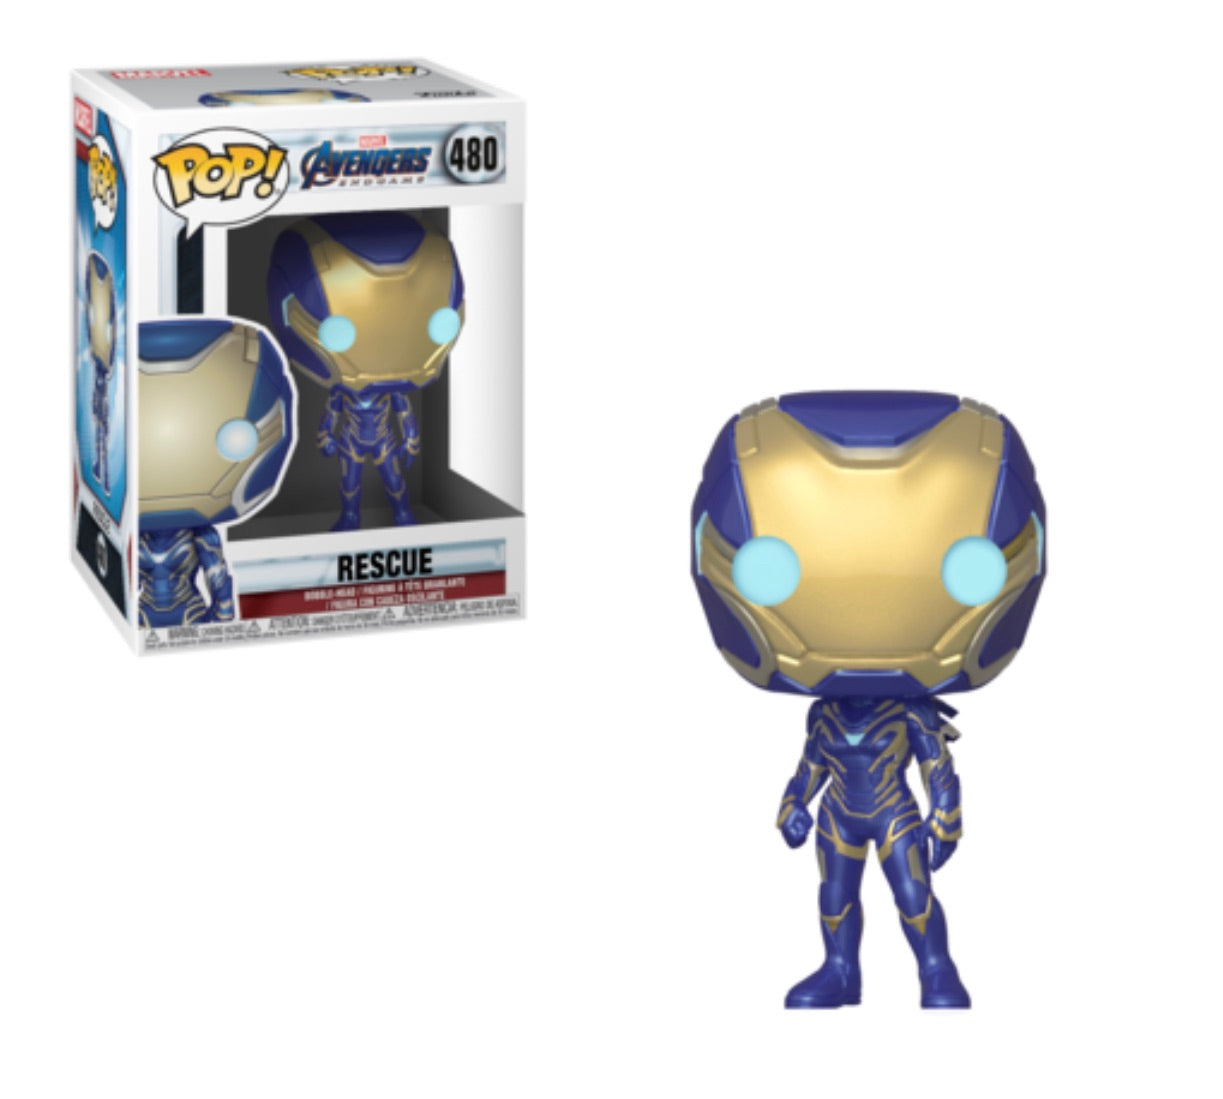 AVENGERS ENDGAME FUNKO POP! RESCUE #480 (IN Stock)